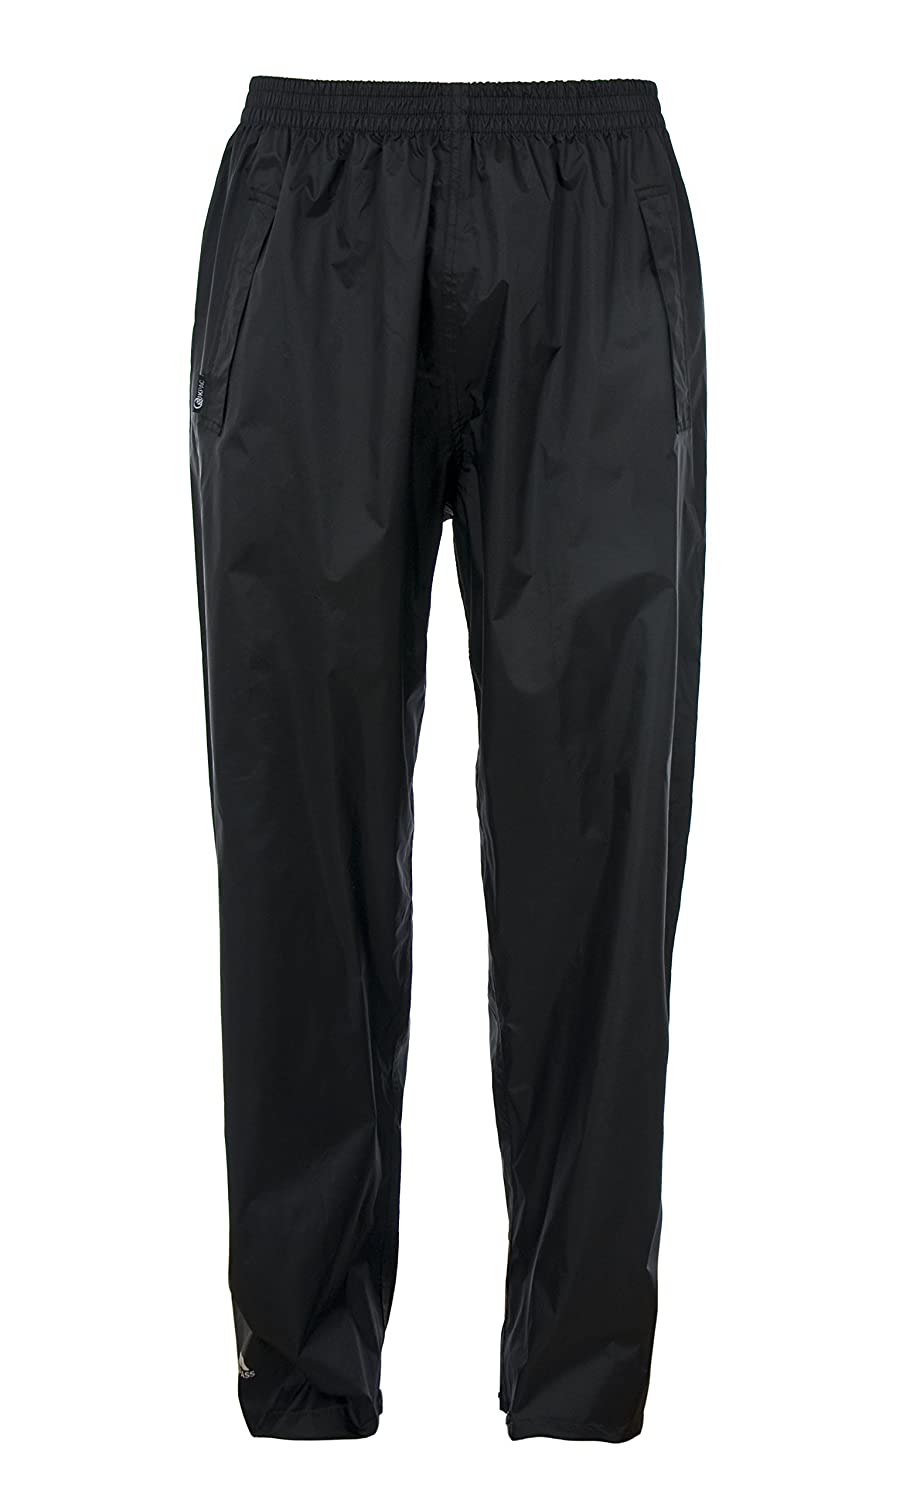 Trespass Qikpac Packaway Pant Unisex-Flint Trespass USA